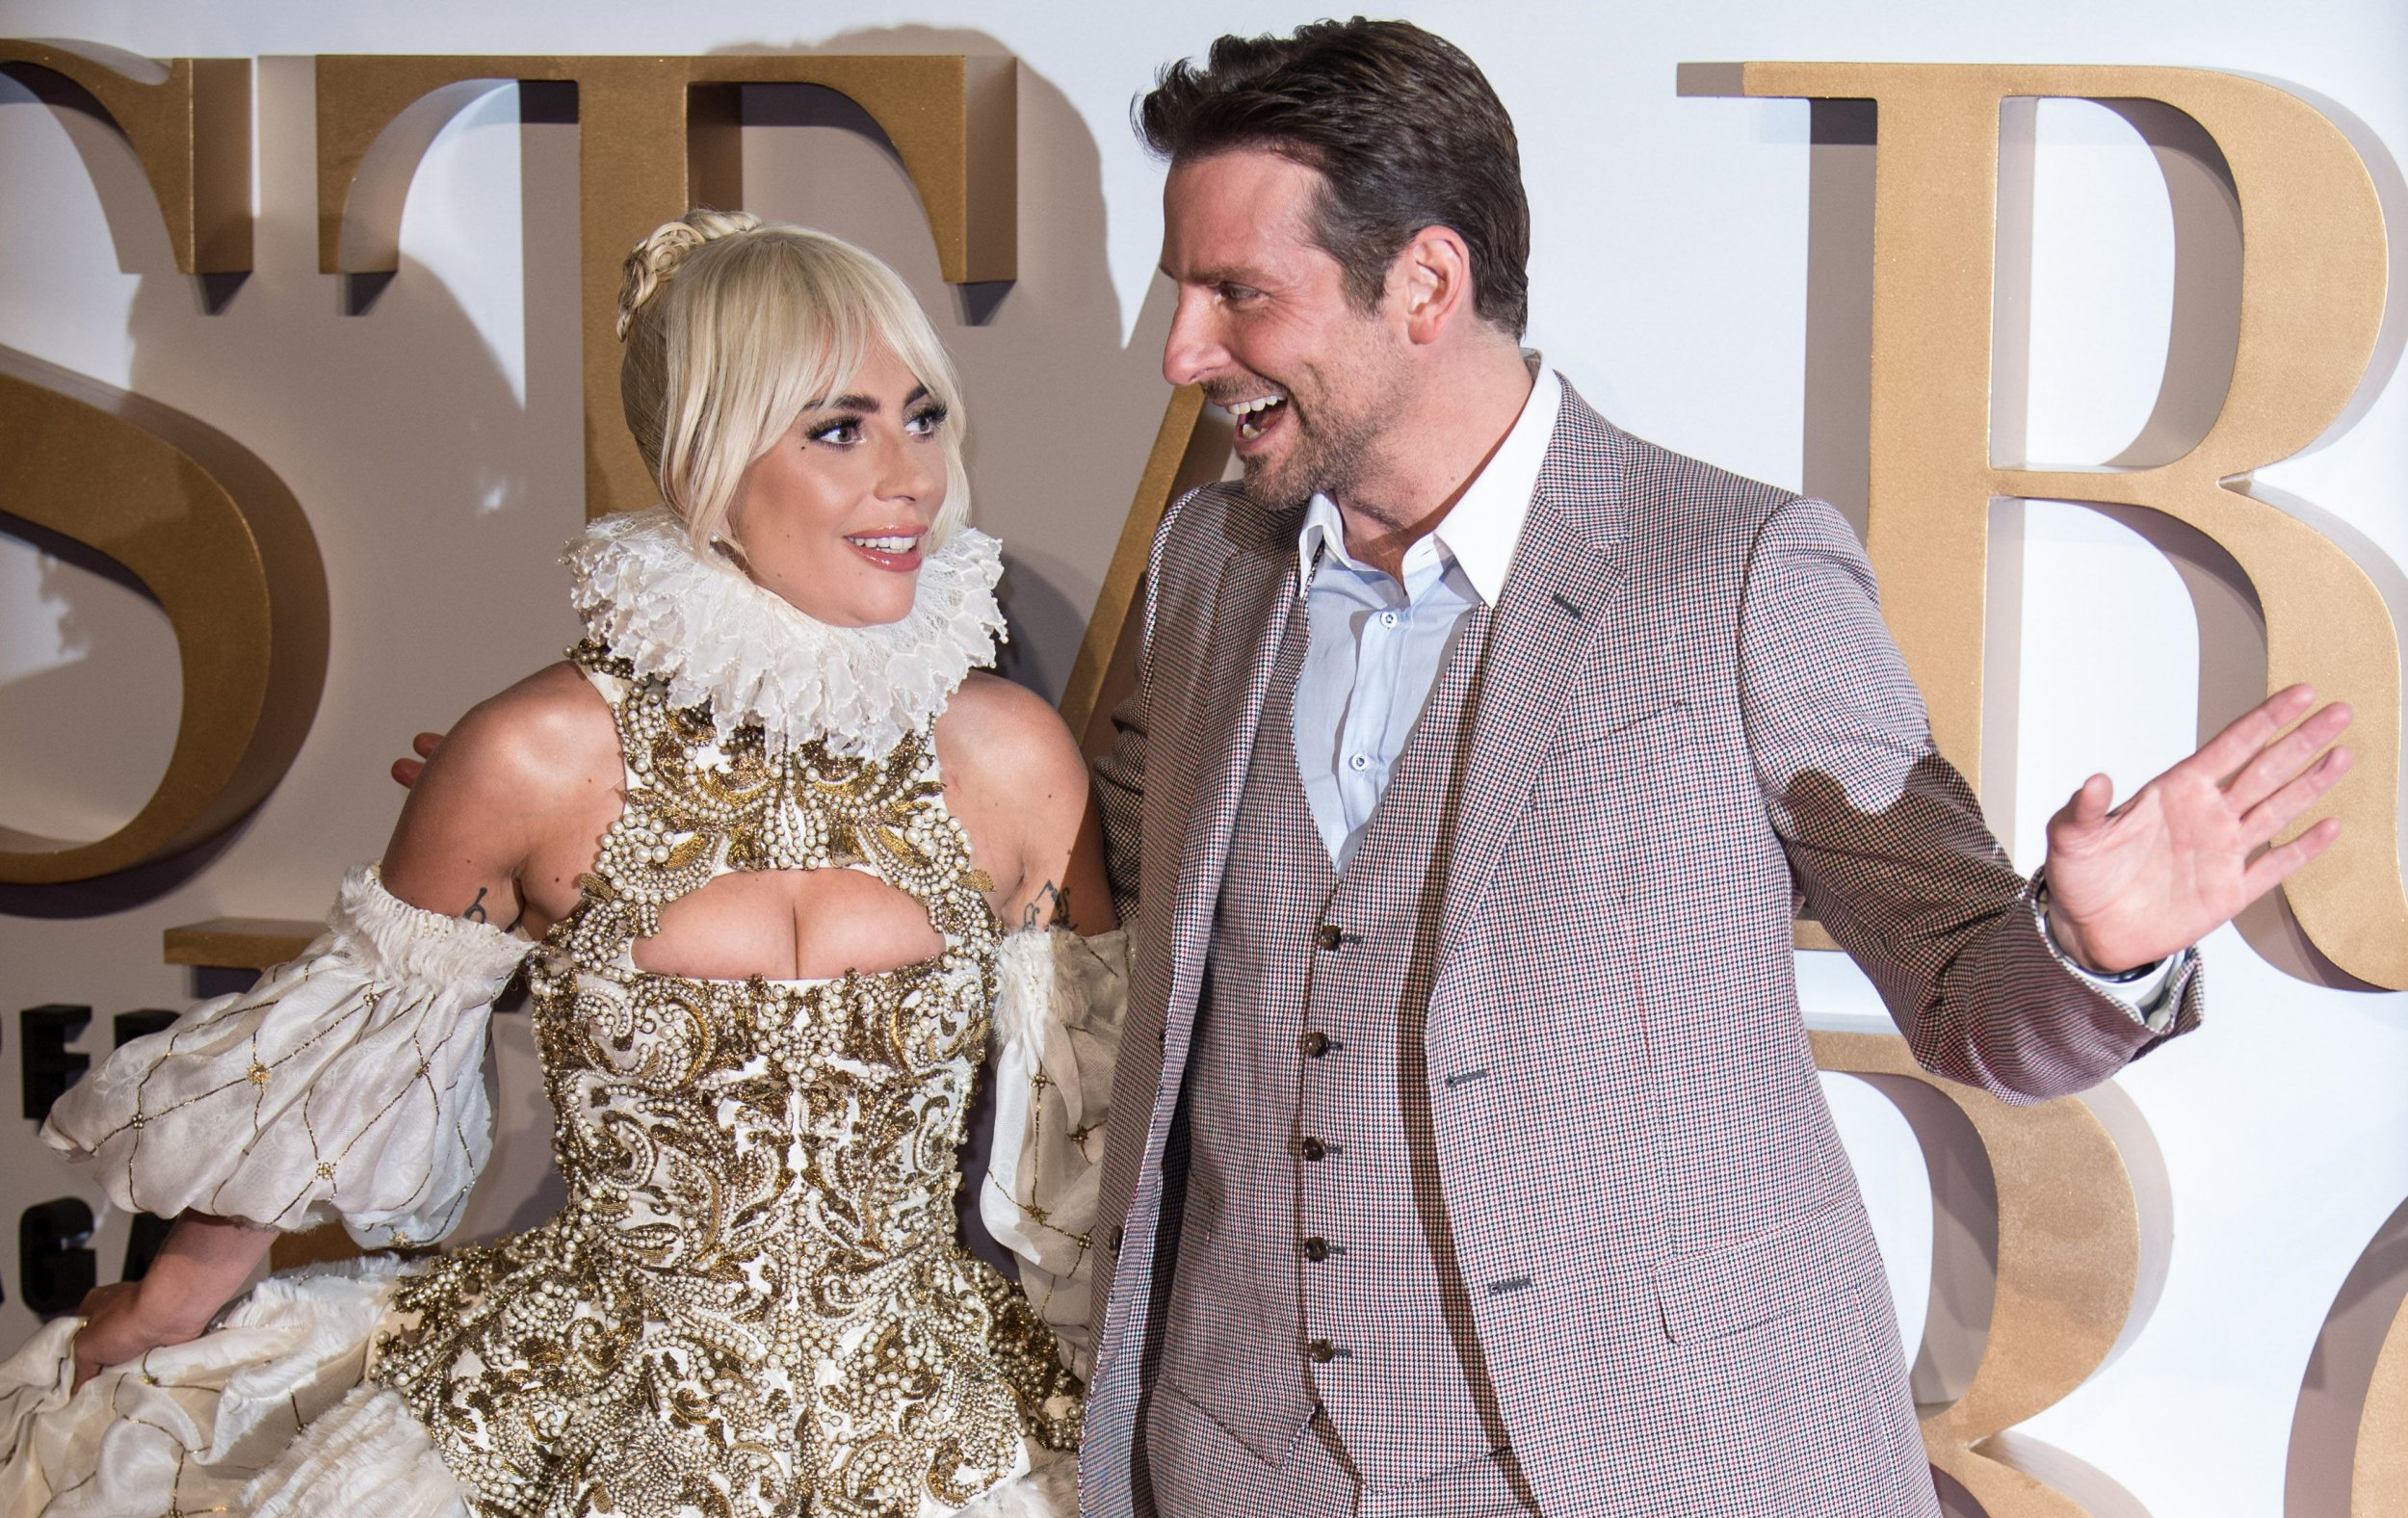 Mandatory Credit: Photo by James Gourley/REX/Shutterstock (9897037dl) Lady Gaga and Bradley Cooper 'A Star Is Born' film premiere, London, UK - 27 Sep 2018